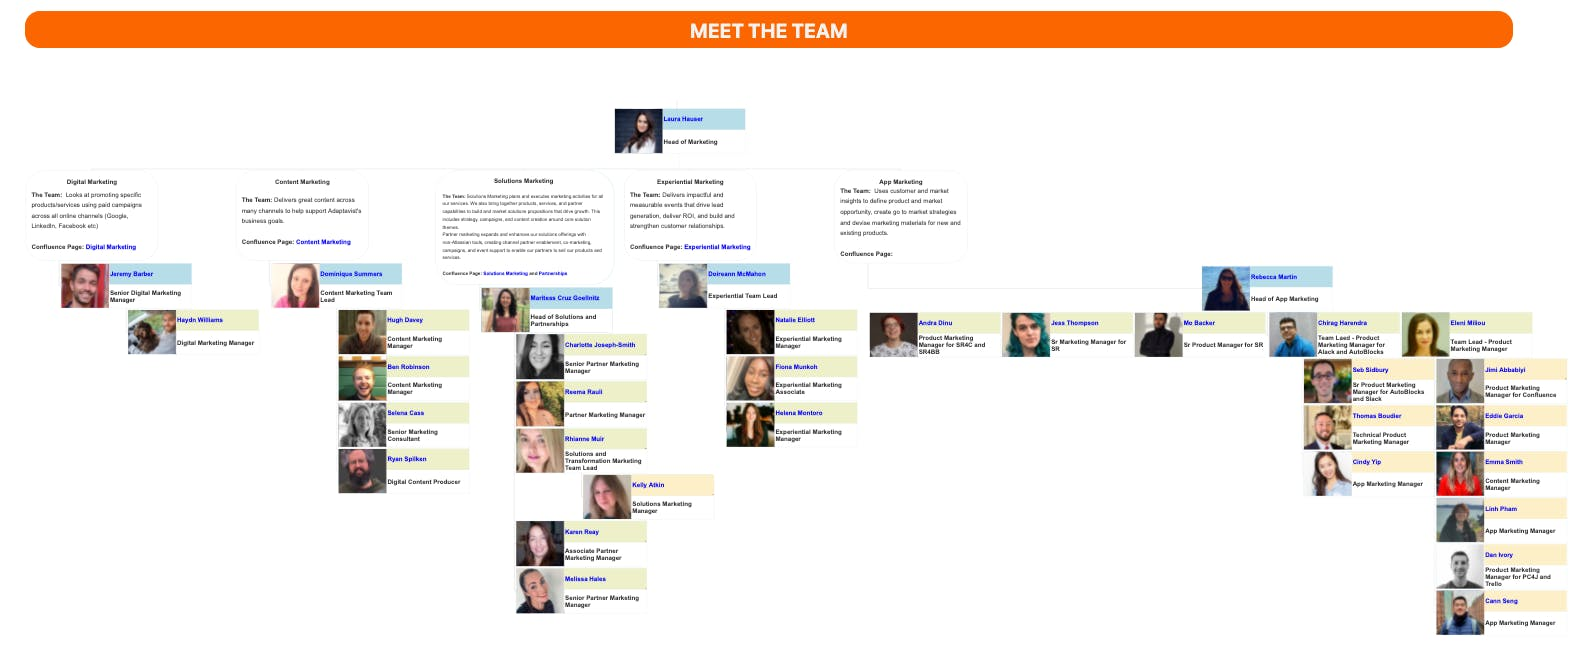 Screenshot of a company organisational chart, showing a map of profile photos and job titles